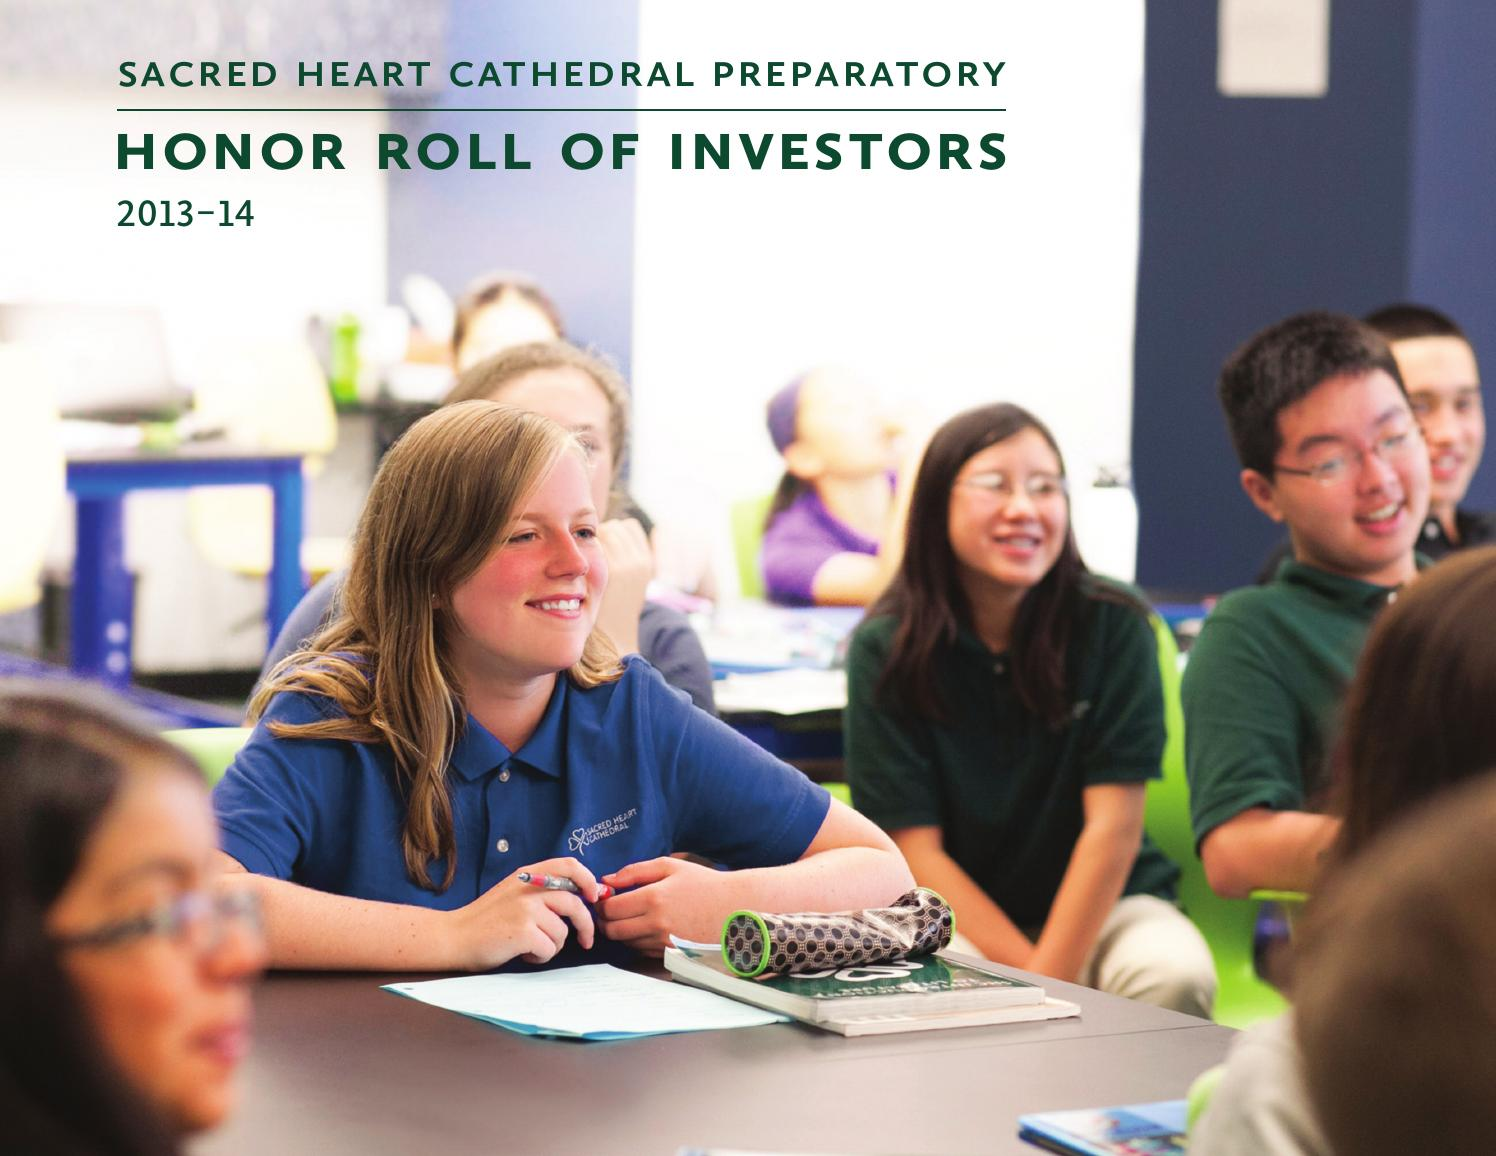 a3b2d4a26655 Honor Roll of Investors 2013-14 by SHCinSF - issuu